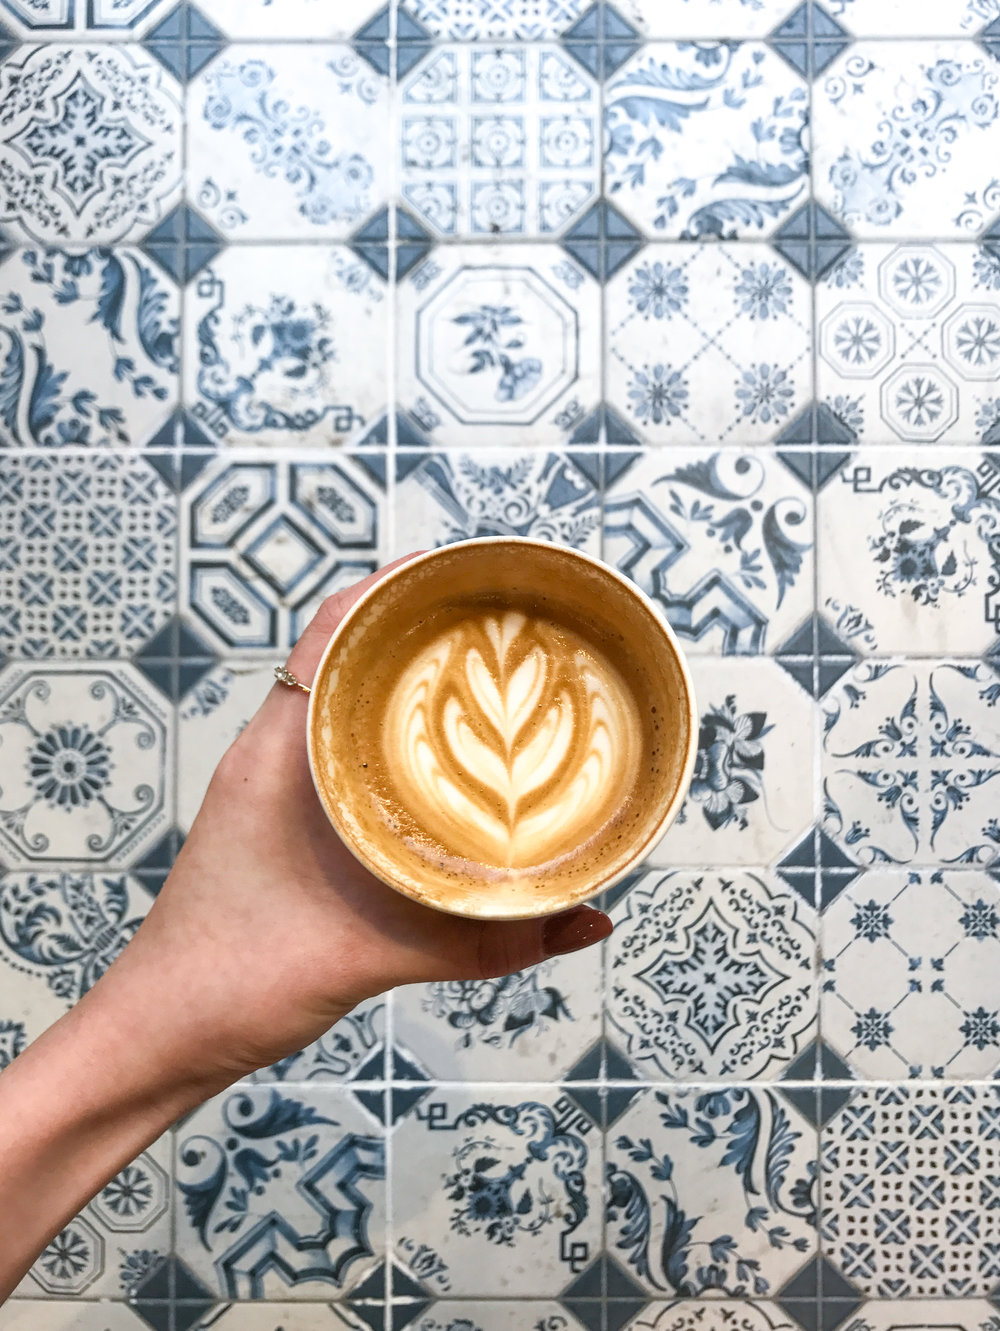 The patterned tiling at the entrance makes for the perfect coffee photo backdrop.